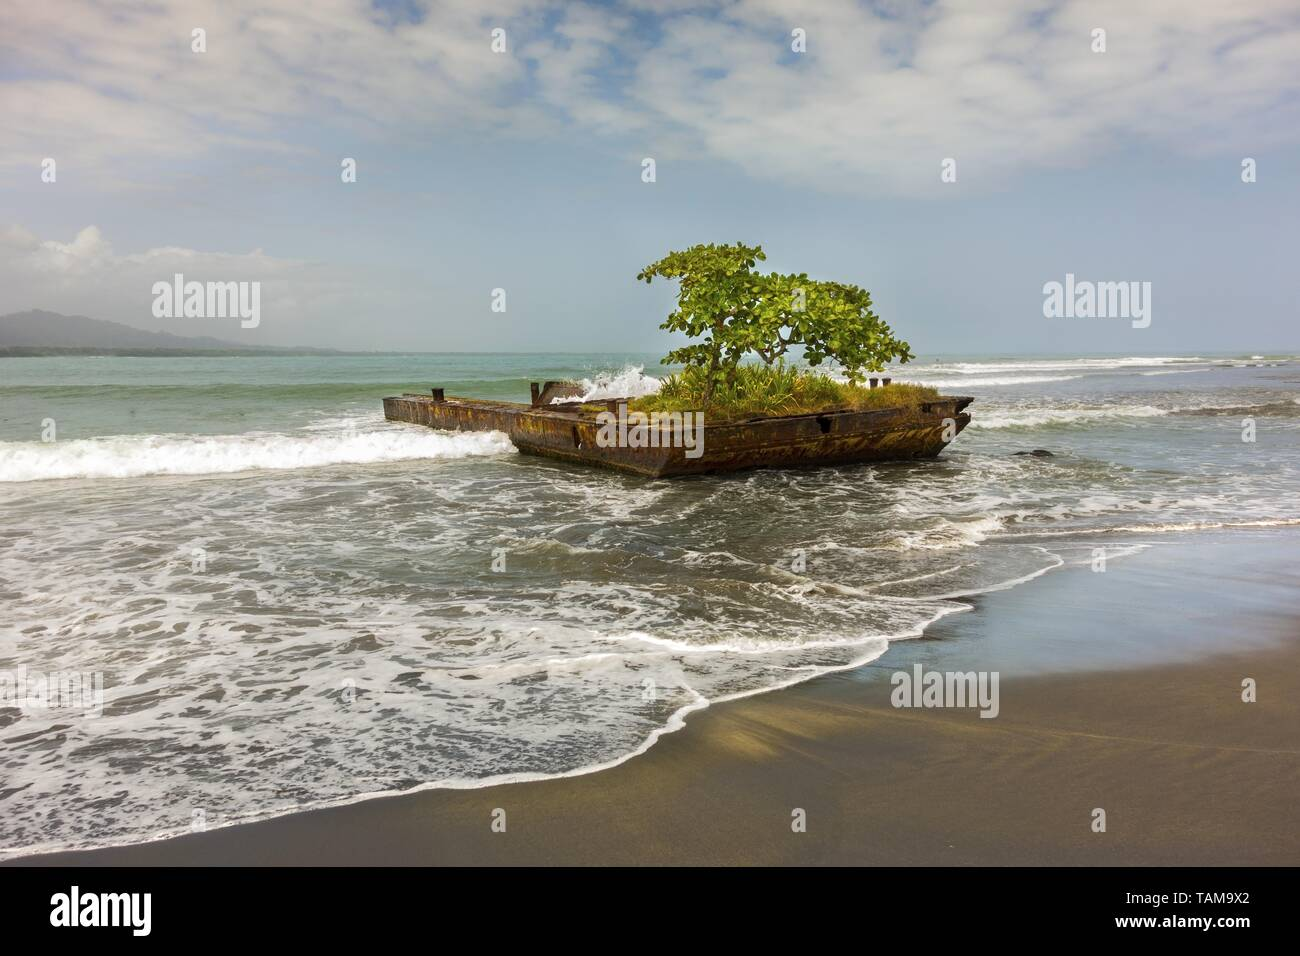 Arbre isolé sur de plus en plus vieux bateau rouillé dock et mer des Caraïbes Tropical Beach Détail dans Ville de Puerto Viejo de Talamanca, Costa Rica Limon Province Photo Stock